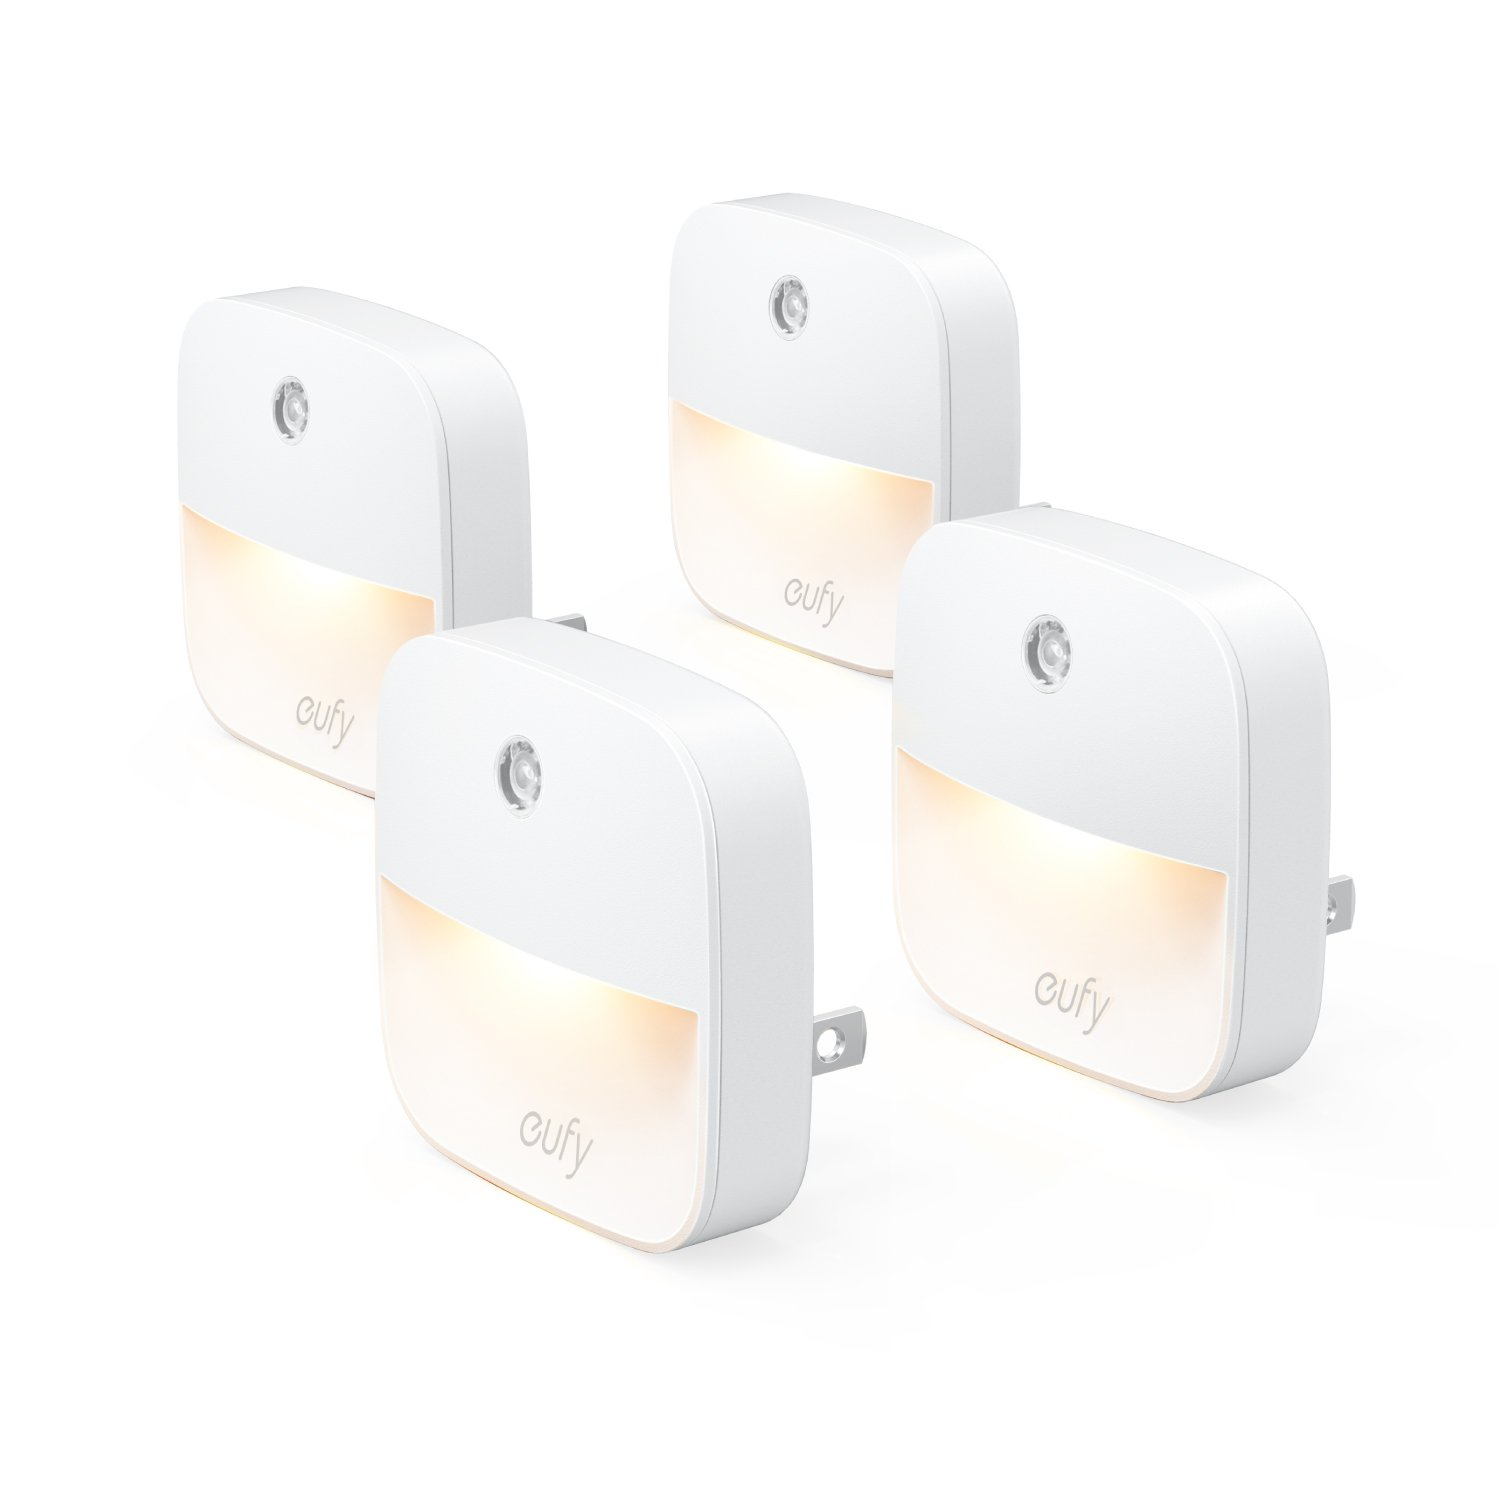 eufy Lumi Plug-in Night Light, Warm White LED Nightlight, Dusk-to-Dawn Sensor, Bedroom, Bathroom, Kitchen, Hallway, Stairs, Energy Efficient, Compact (4 Pack)